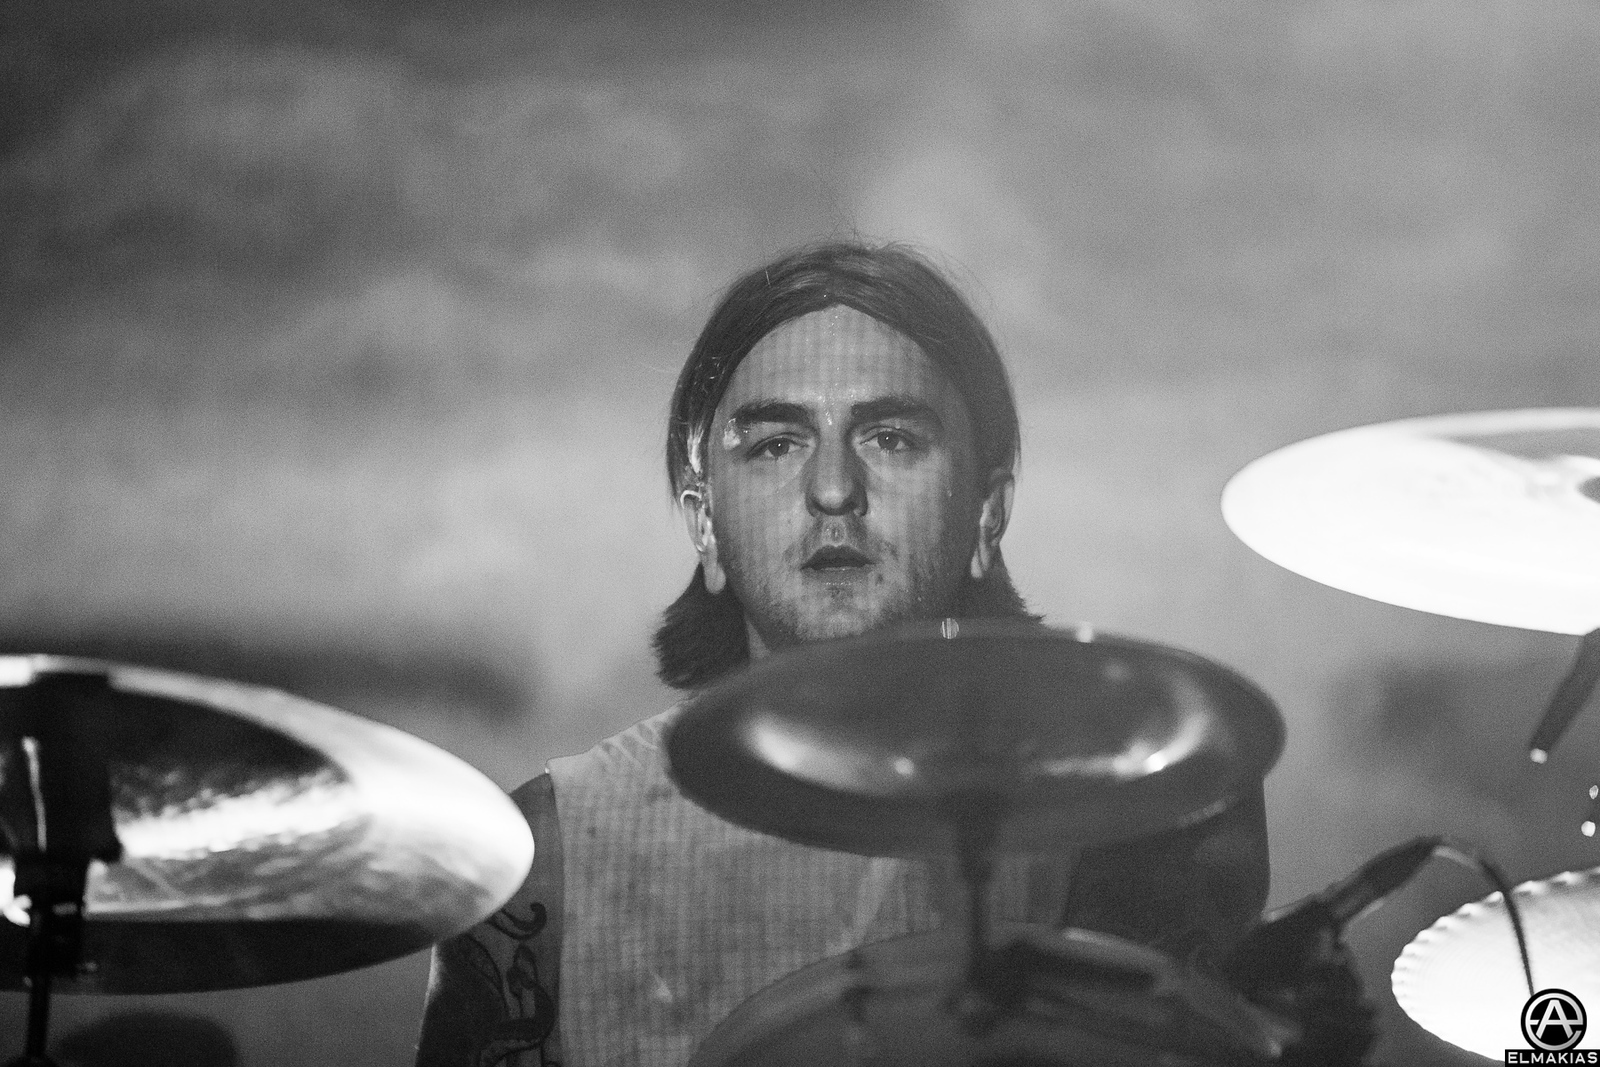 Matt Nicholls of Bring Me The Horizon